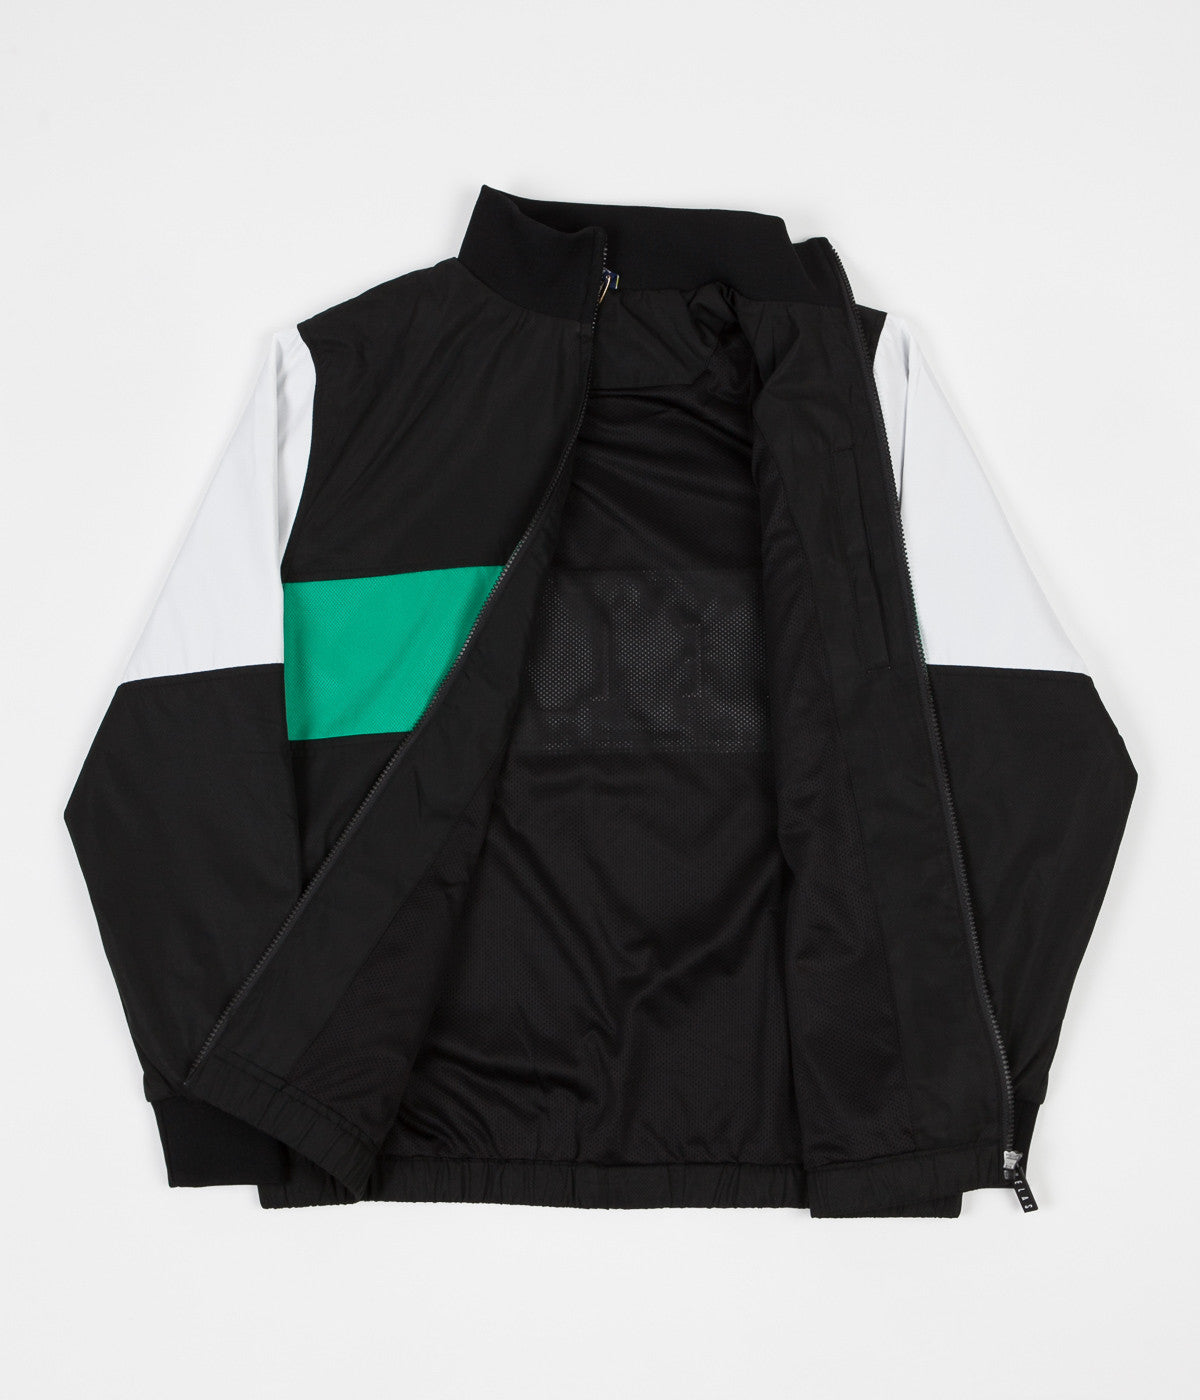 Helas Turbo Tracksuit Jacket - Black